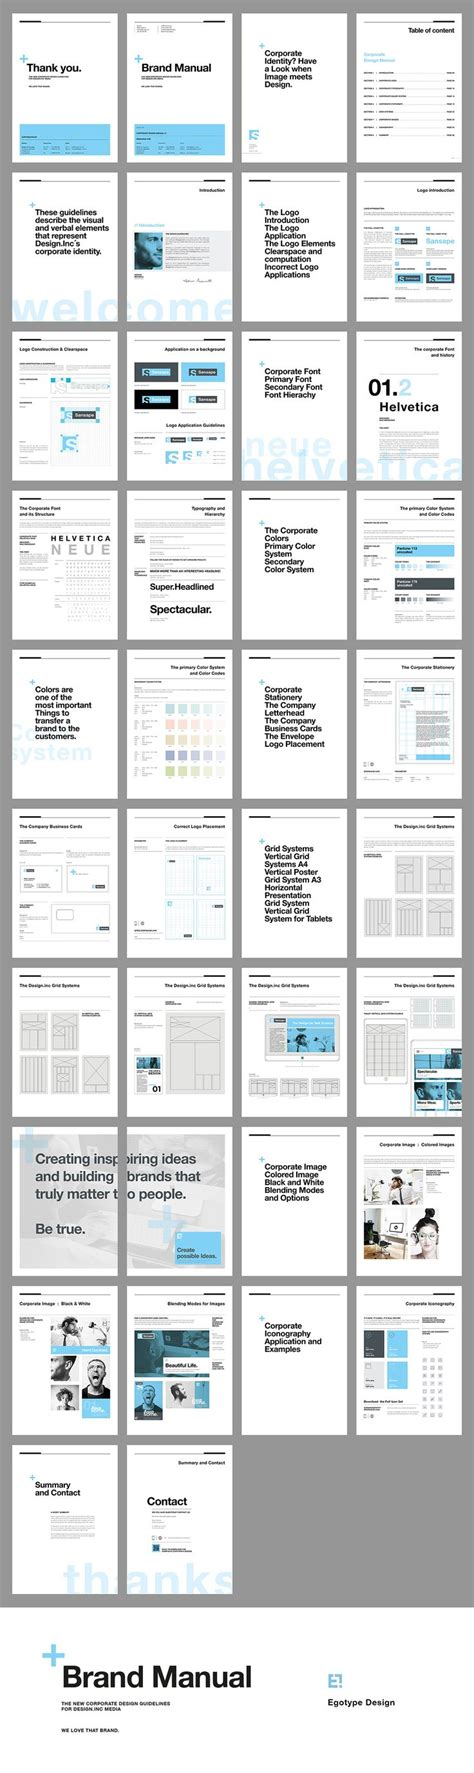 brochure layout design rules 1846 best images about design layouts on pinterest